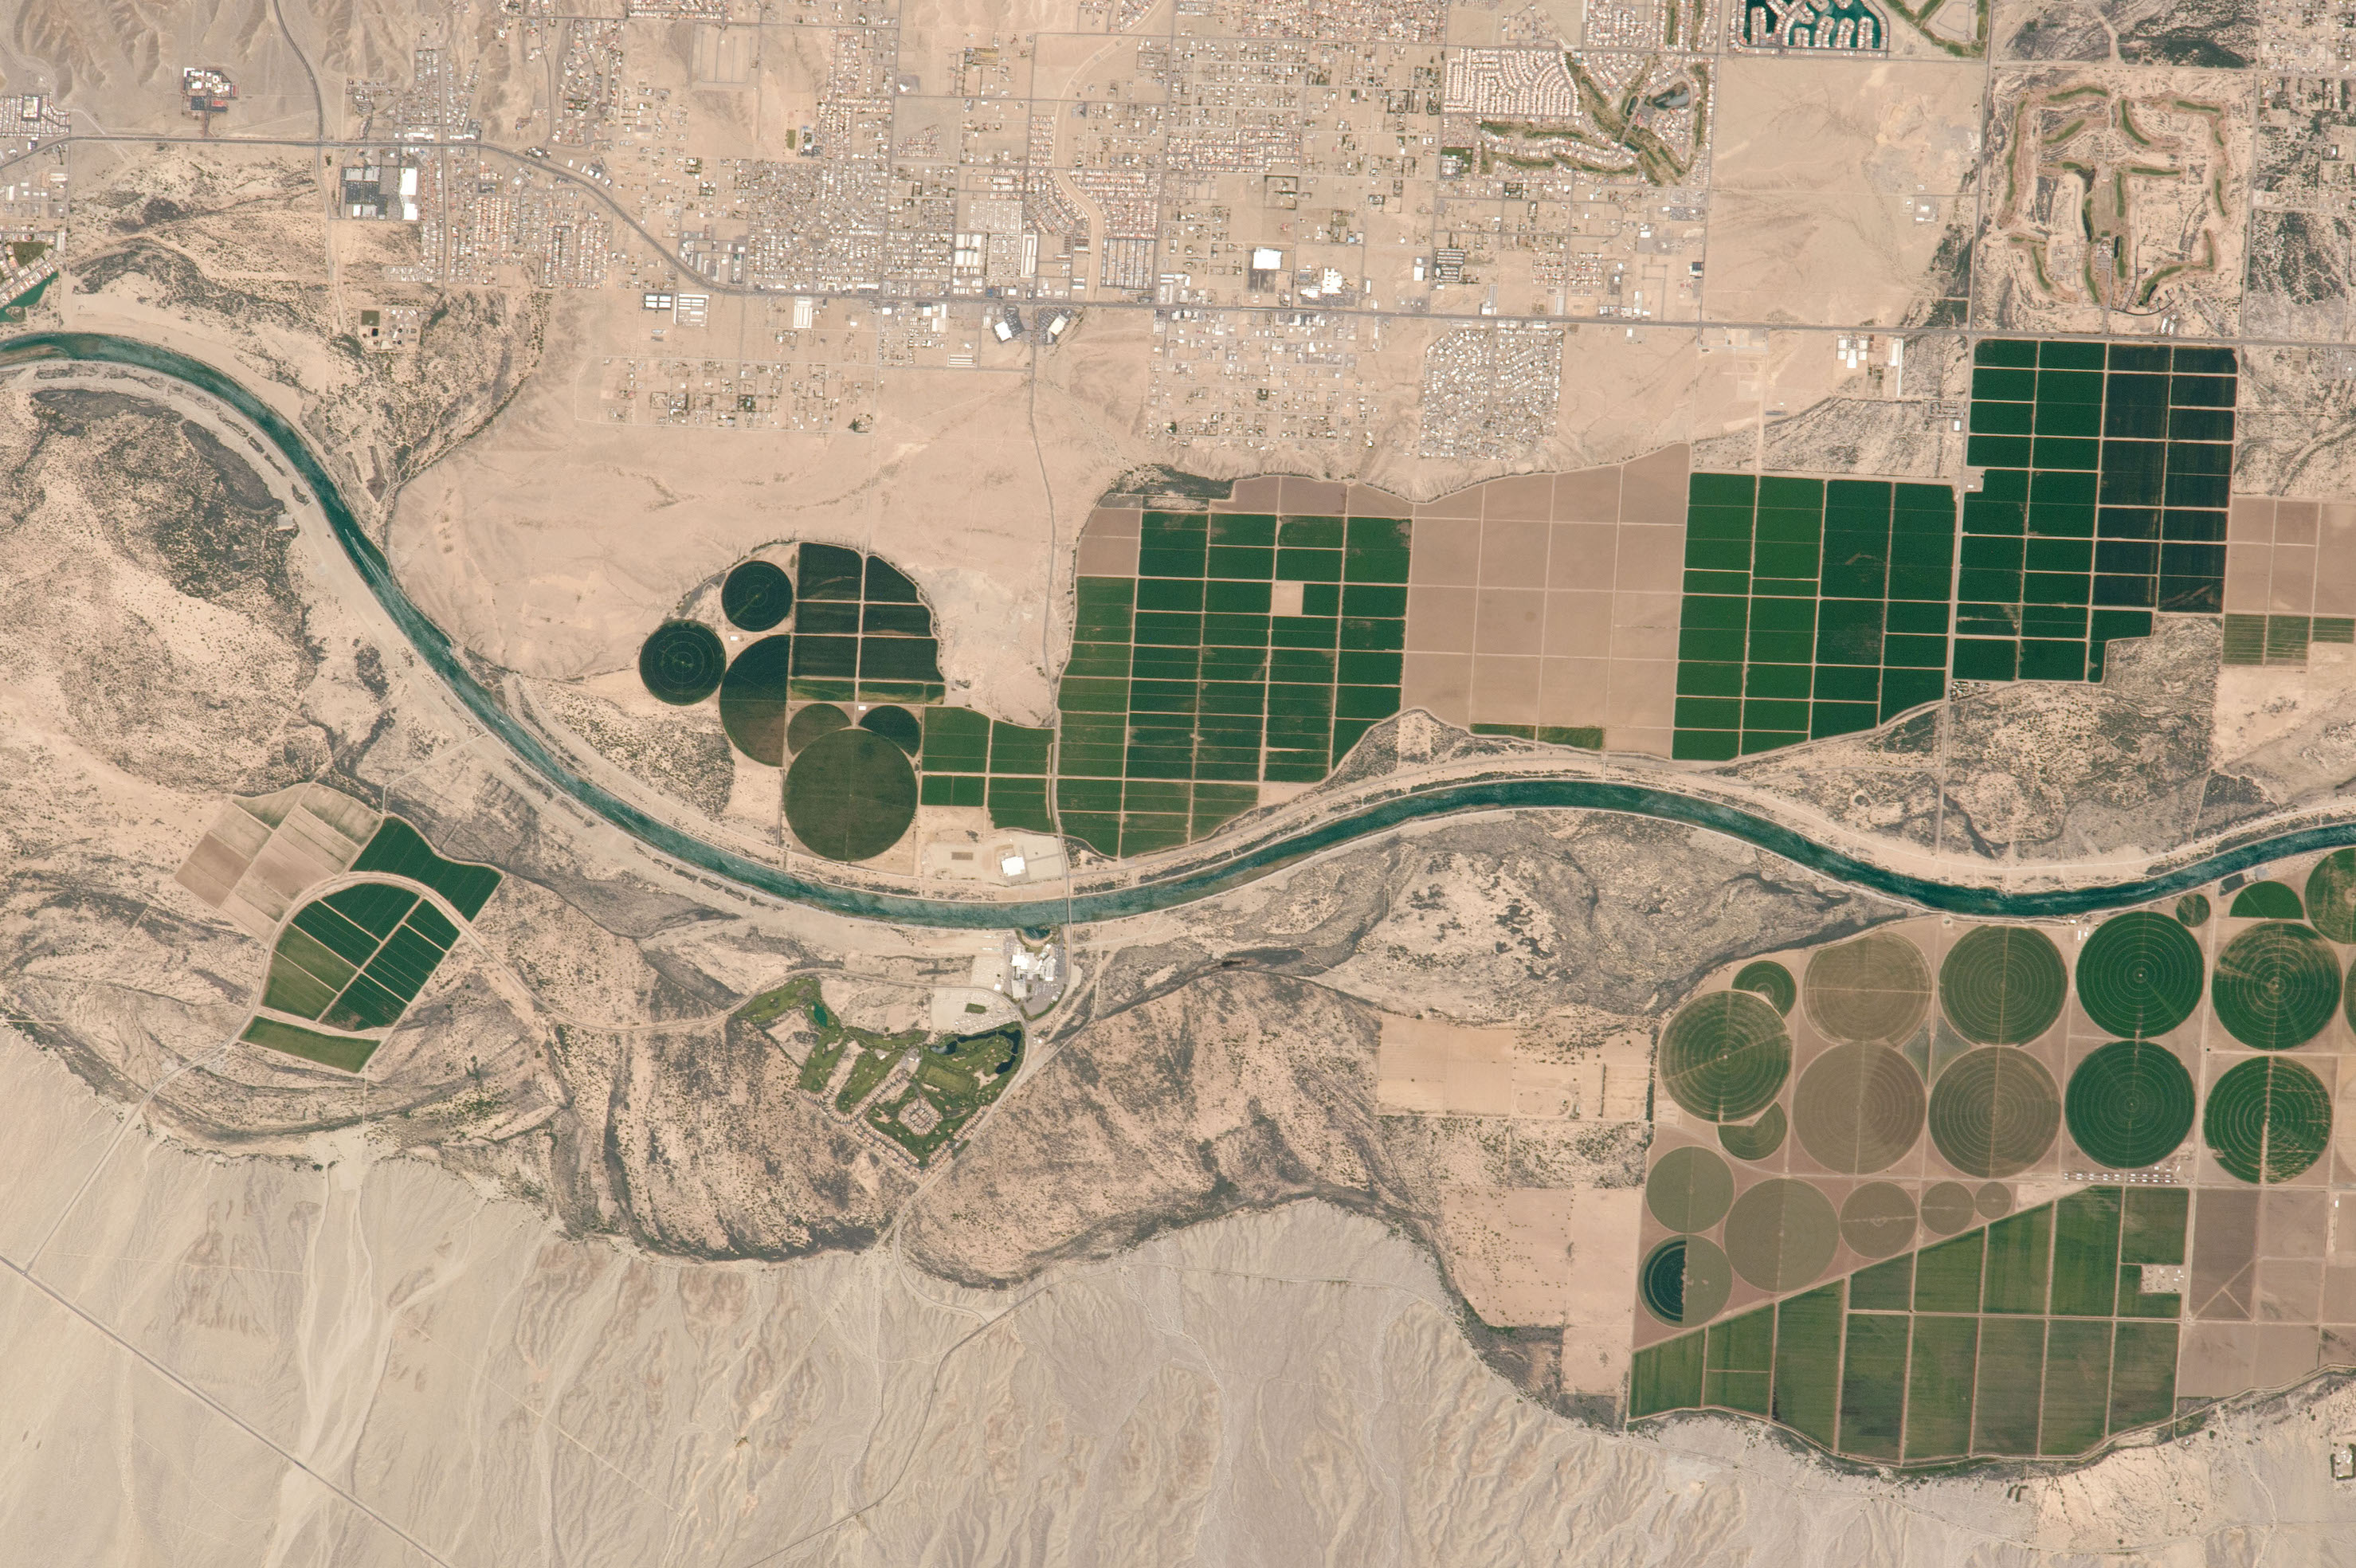 Today's Image of the Day comes thanks to the NASA Earth Observatory and features a look at agriculture along the Colorado River.